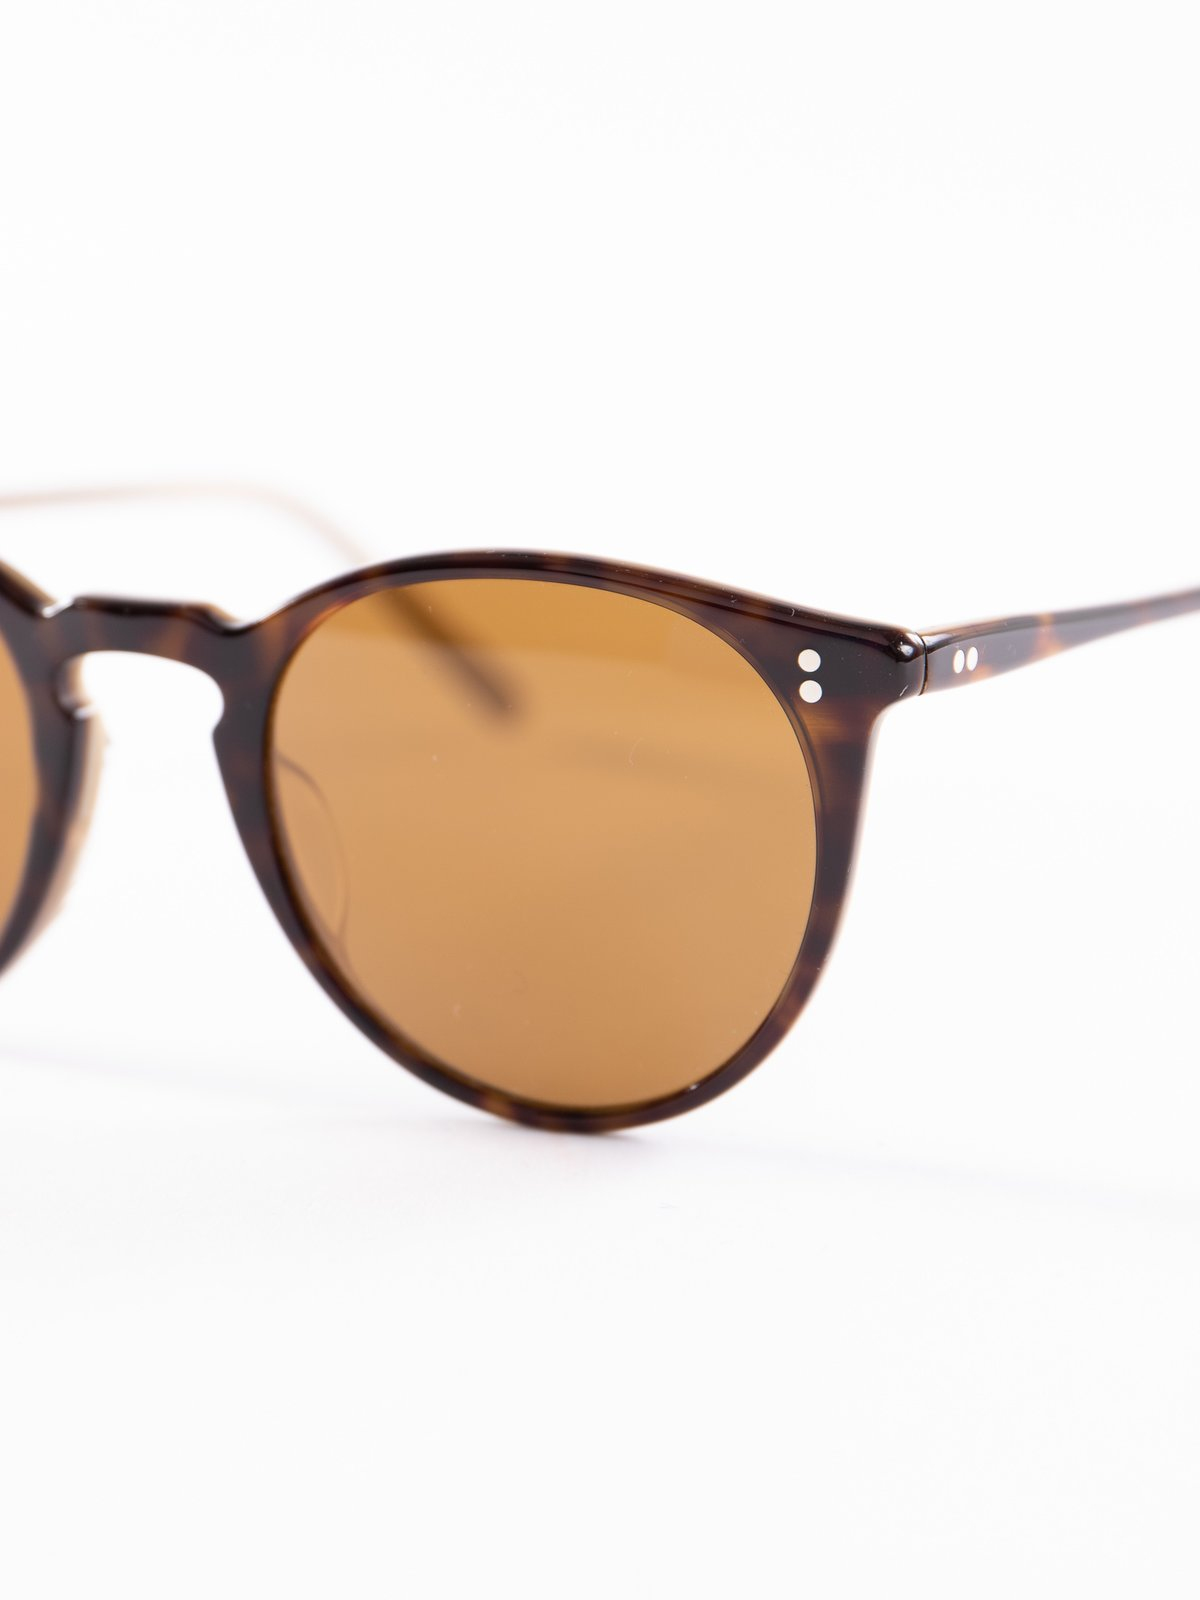 362–Horn/Brown O'Malley Sunglasses - Image 3